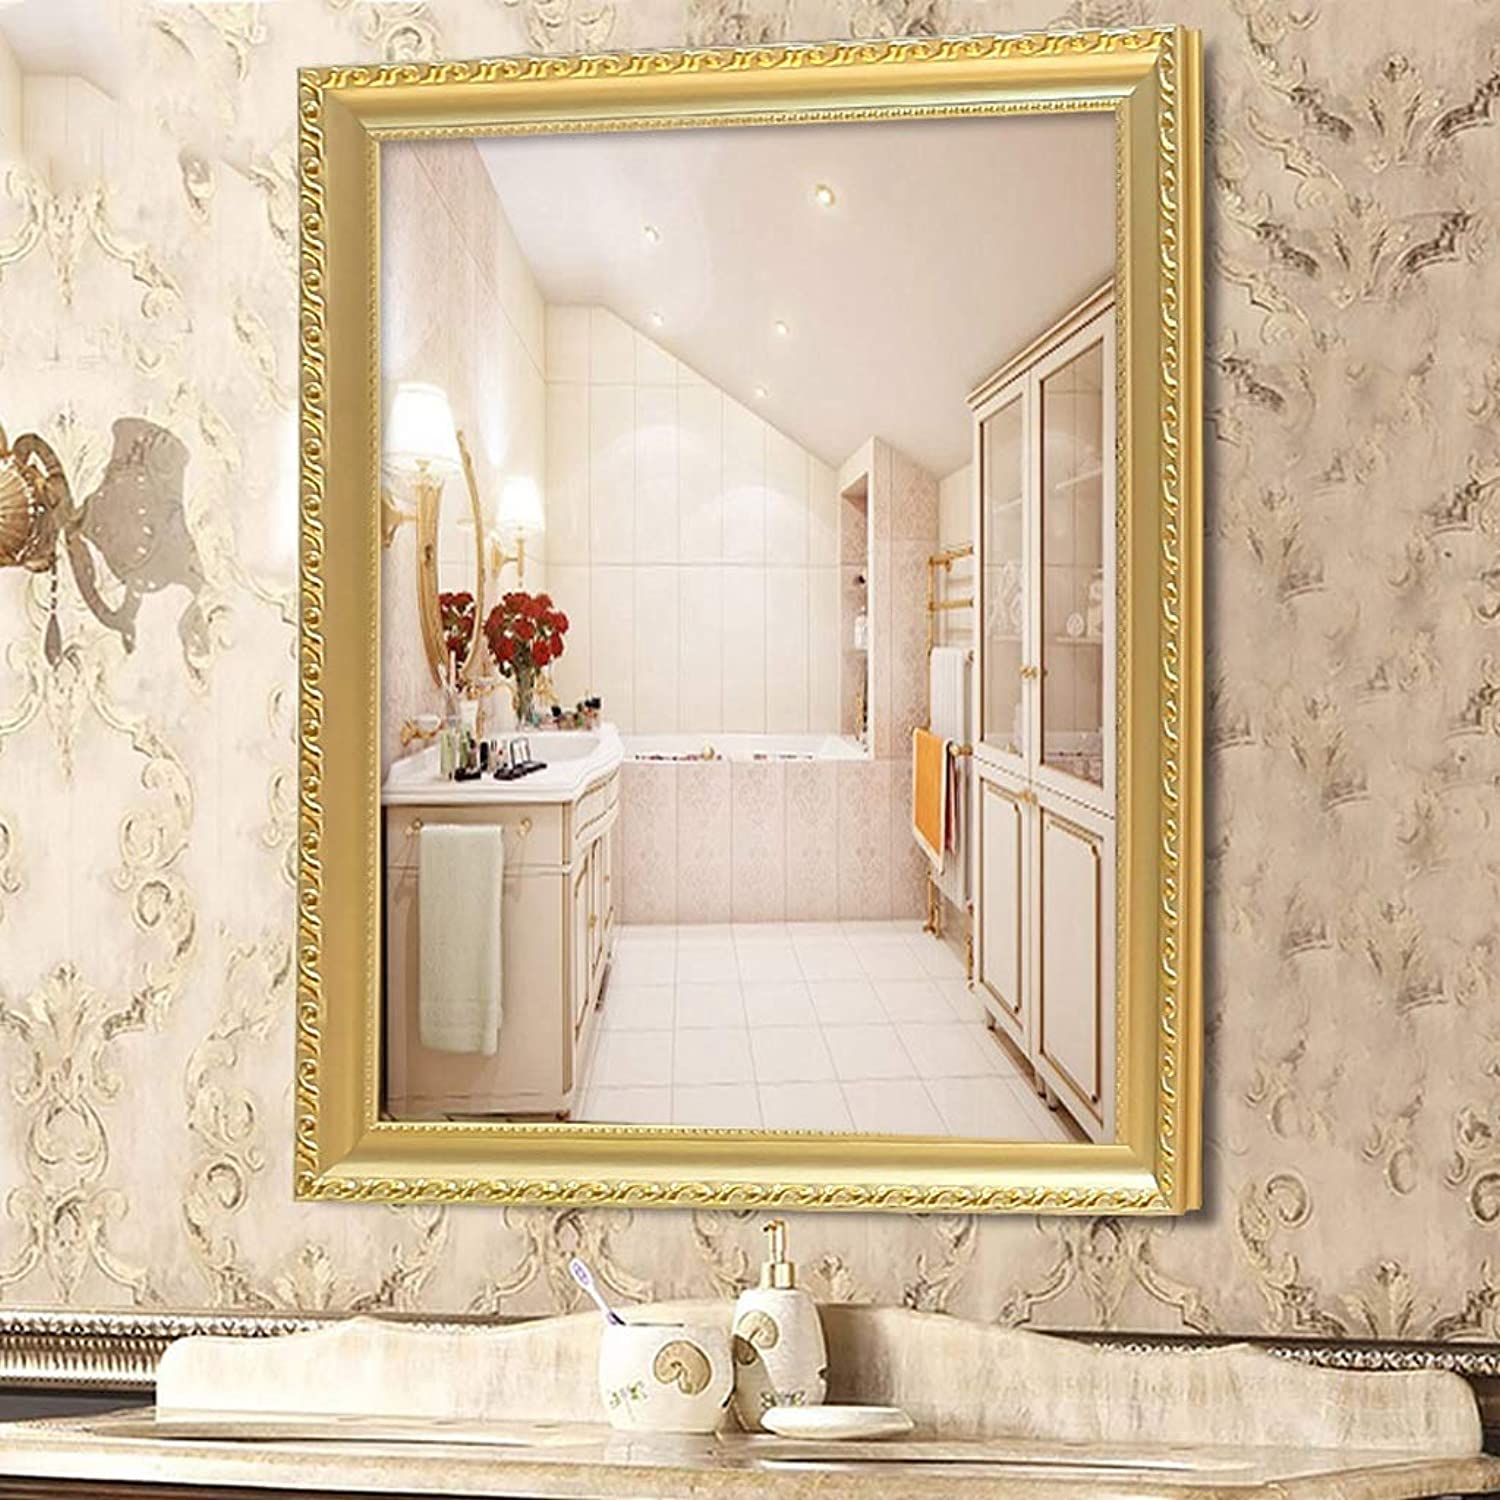 GAIXIA Bathroom Mirror Wall Mounted Vanity Mirror Washbasin Mirror Wall Mounted Beauty Salon Mirror Wall Mirror (color   Champagne color, Size   40x60cm)